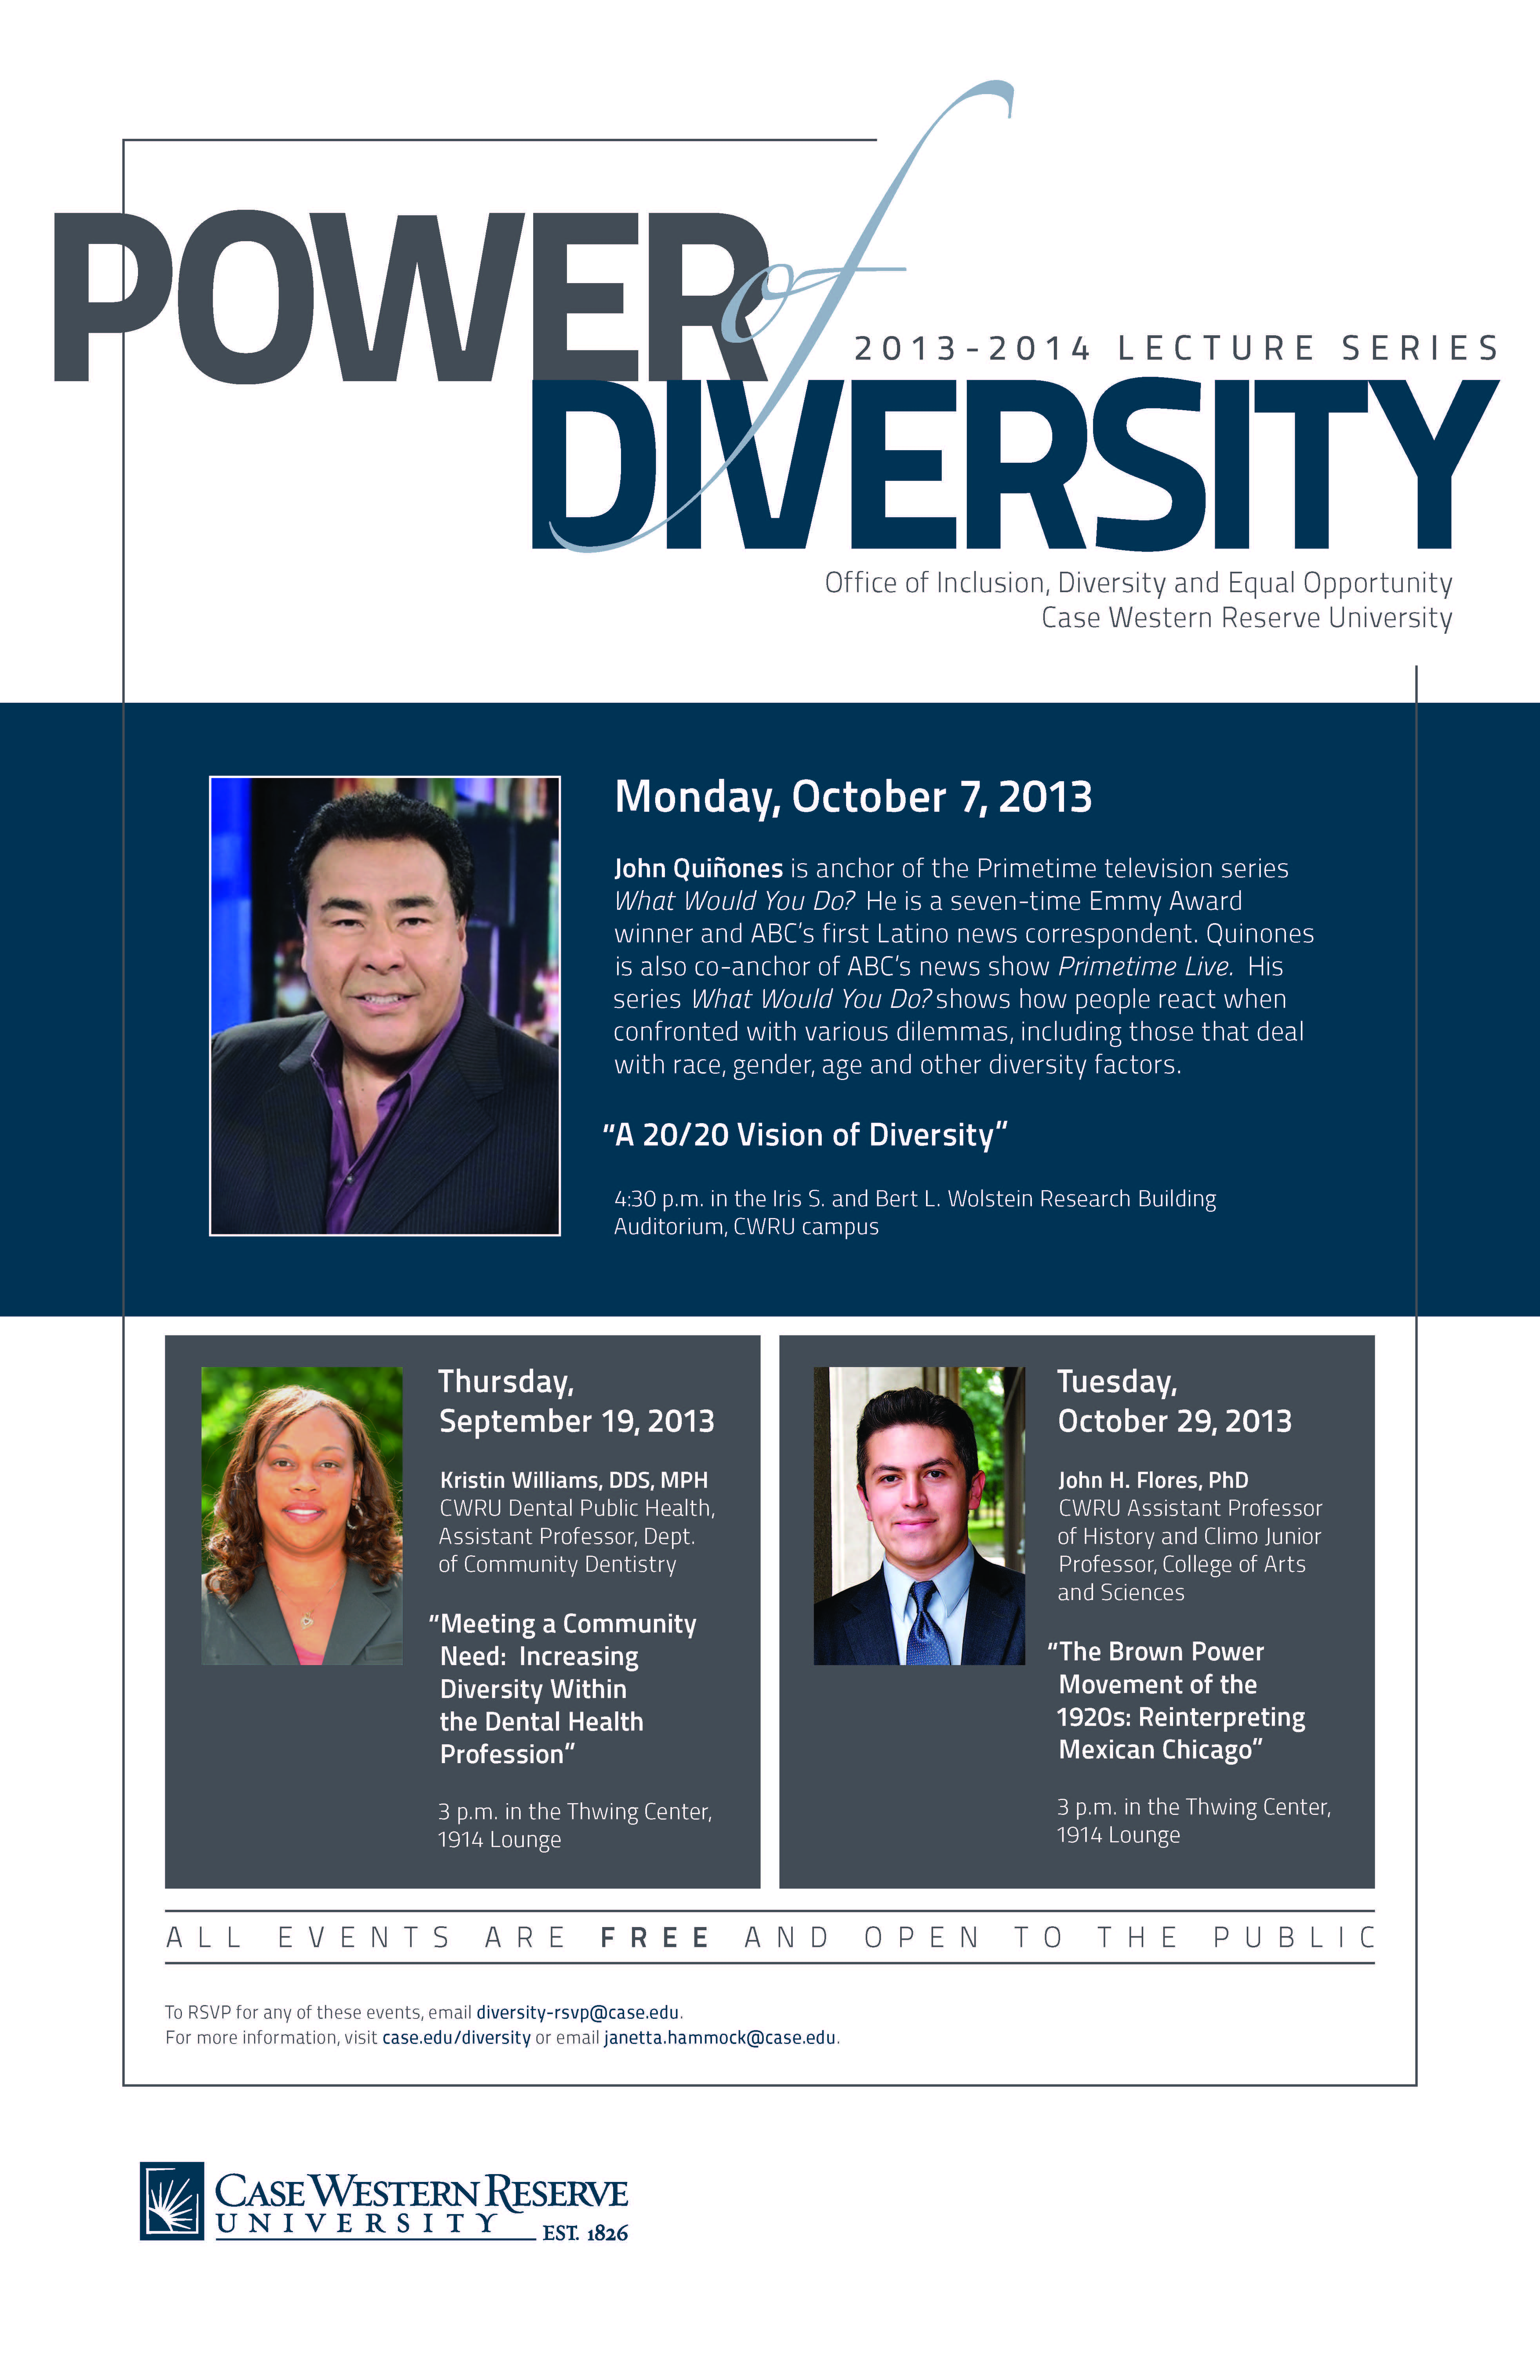 Power of Diversity Lecture Series CWRU